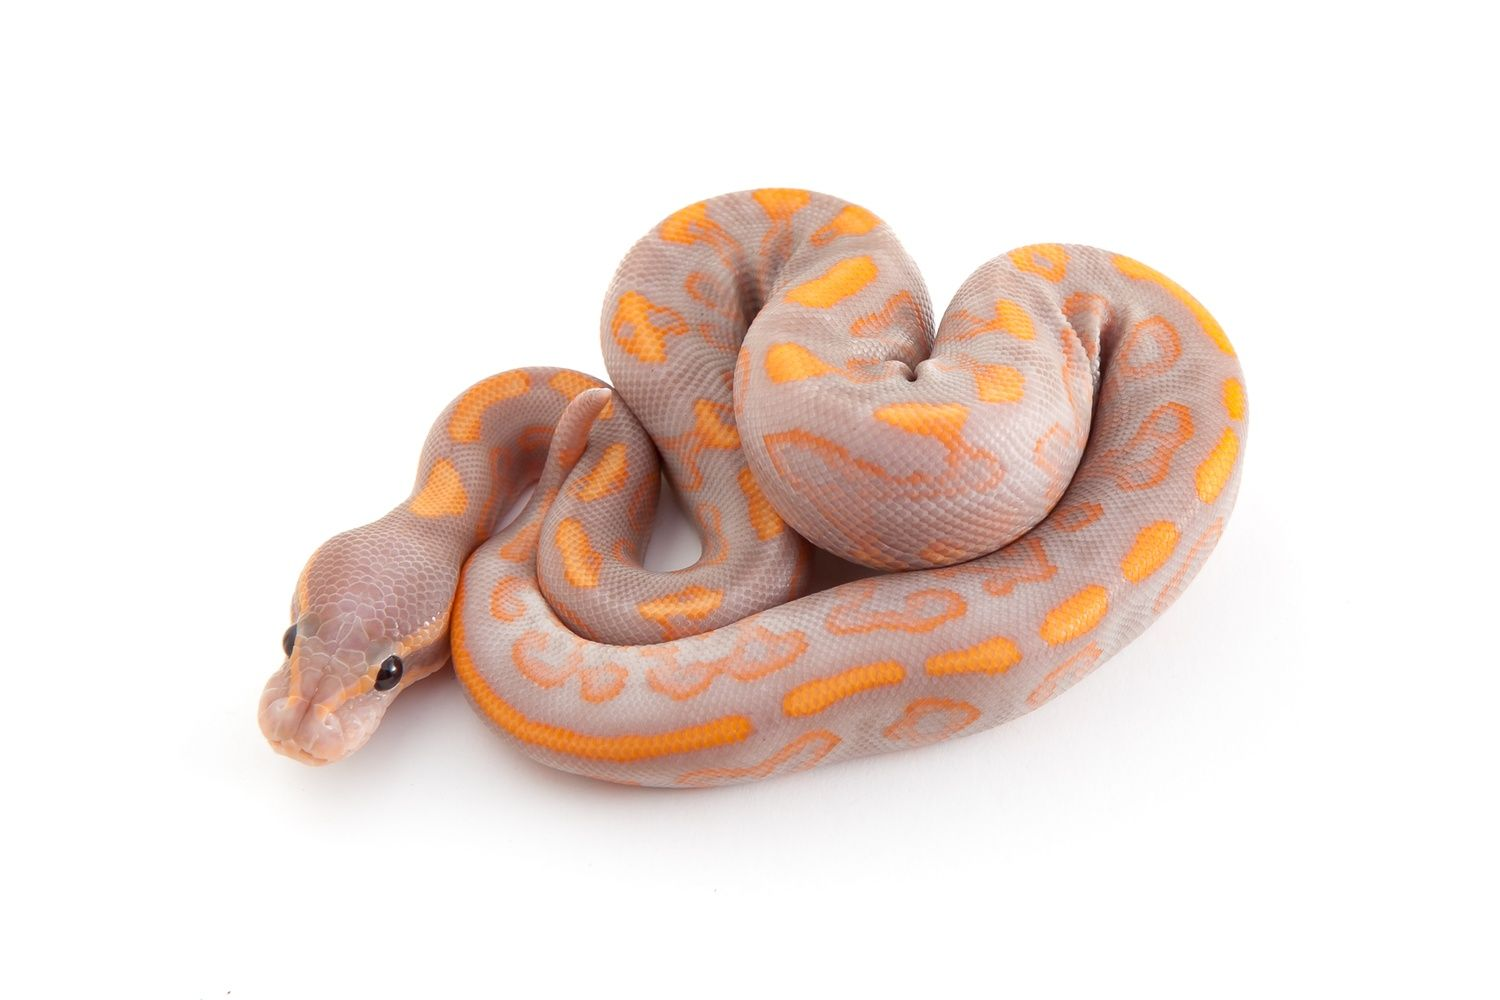 Banana Black Pastel Yellowbelly Ball Python By Outback Reptiles